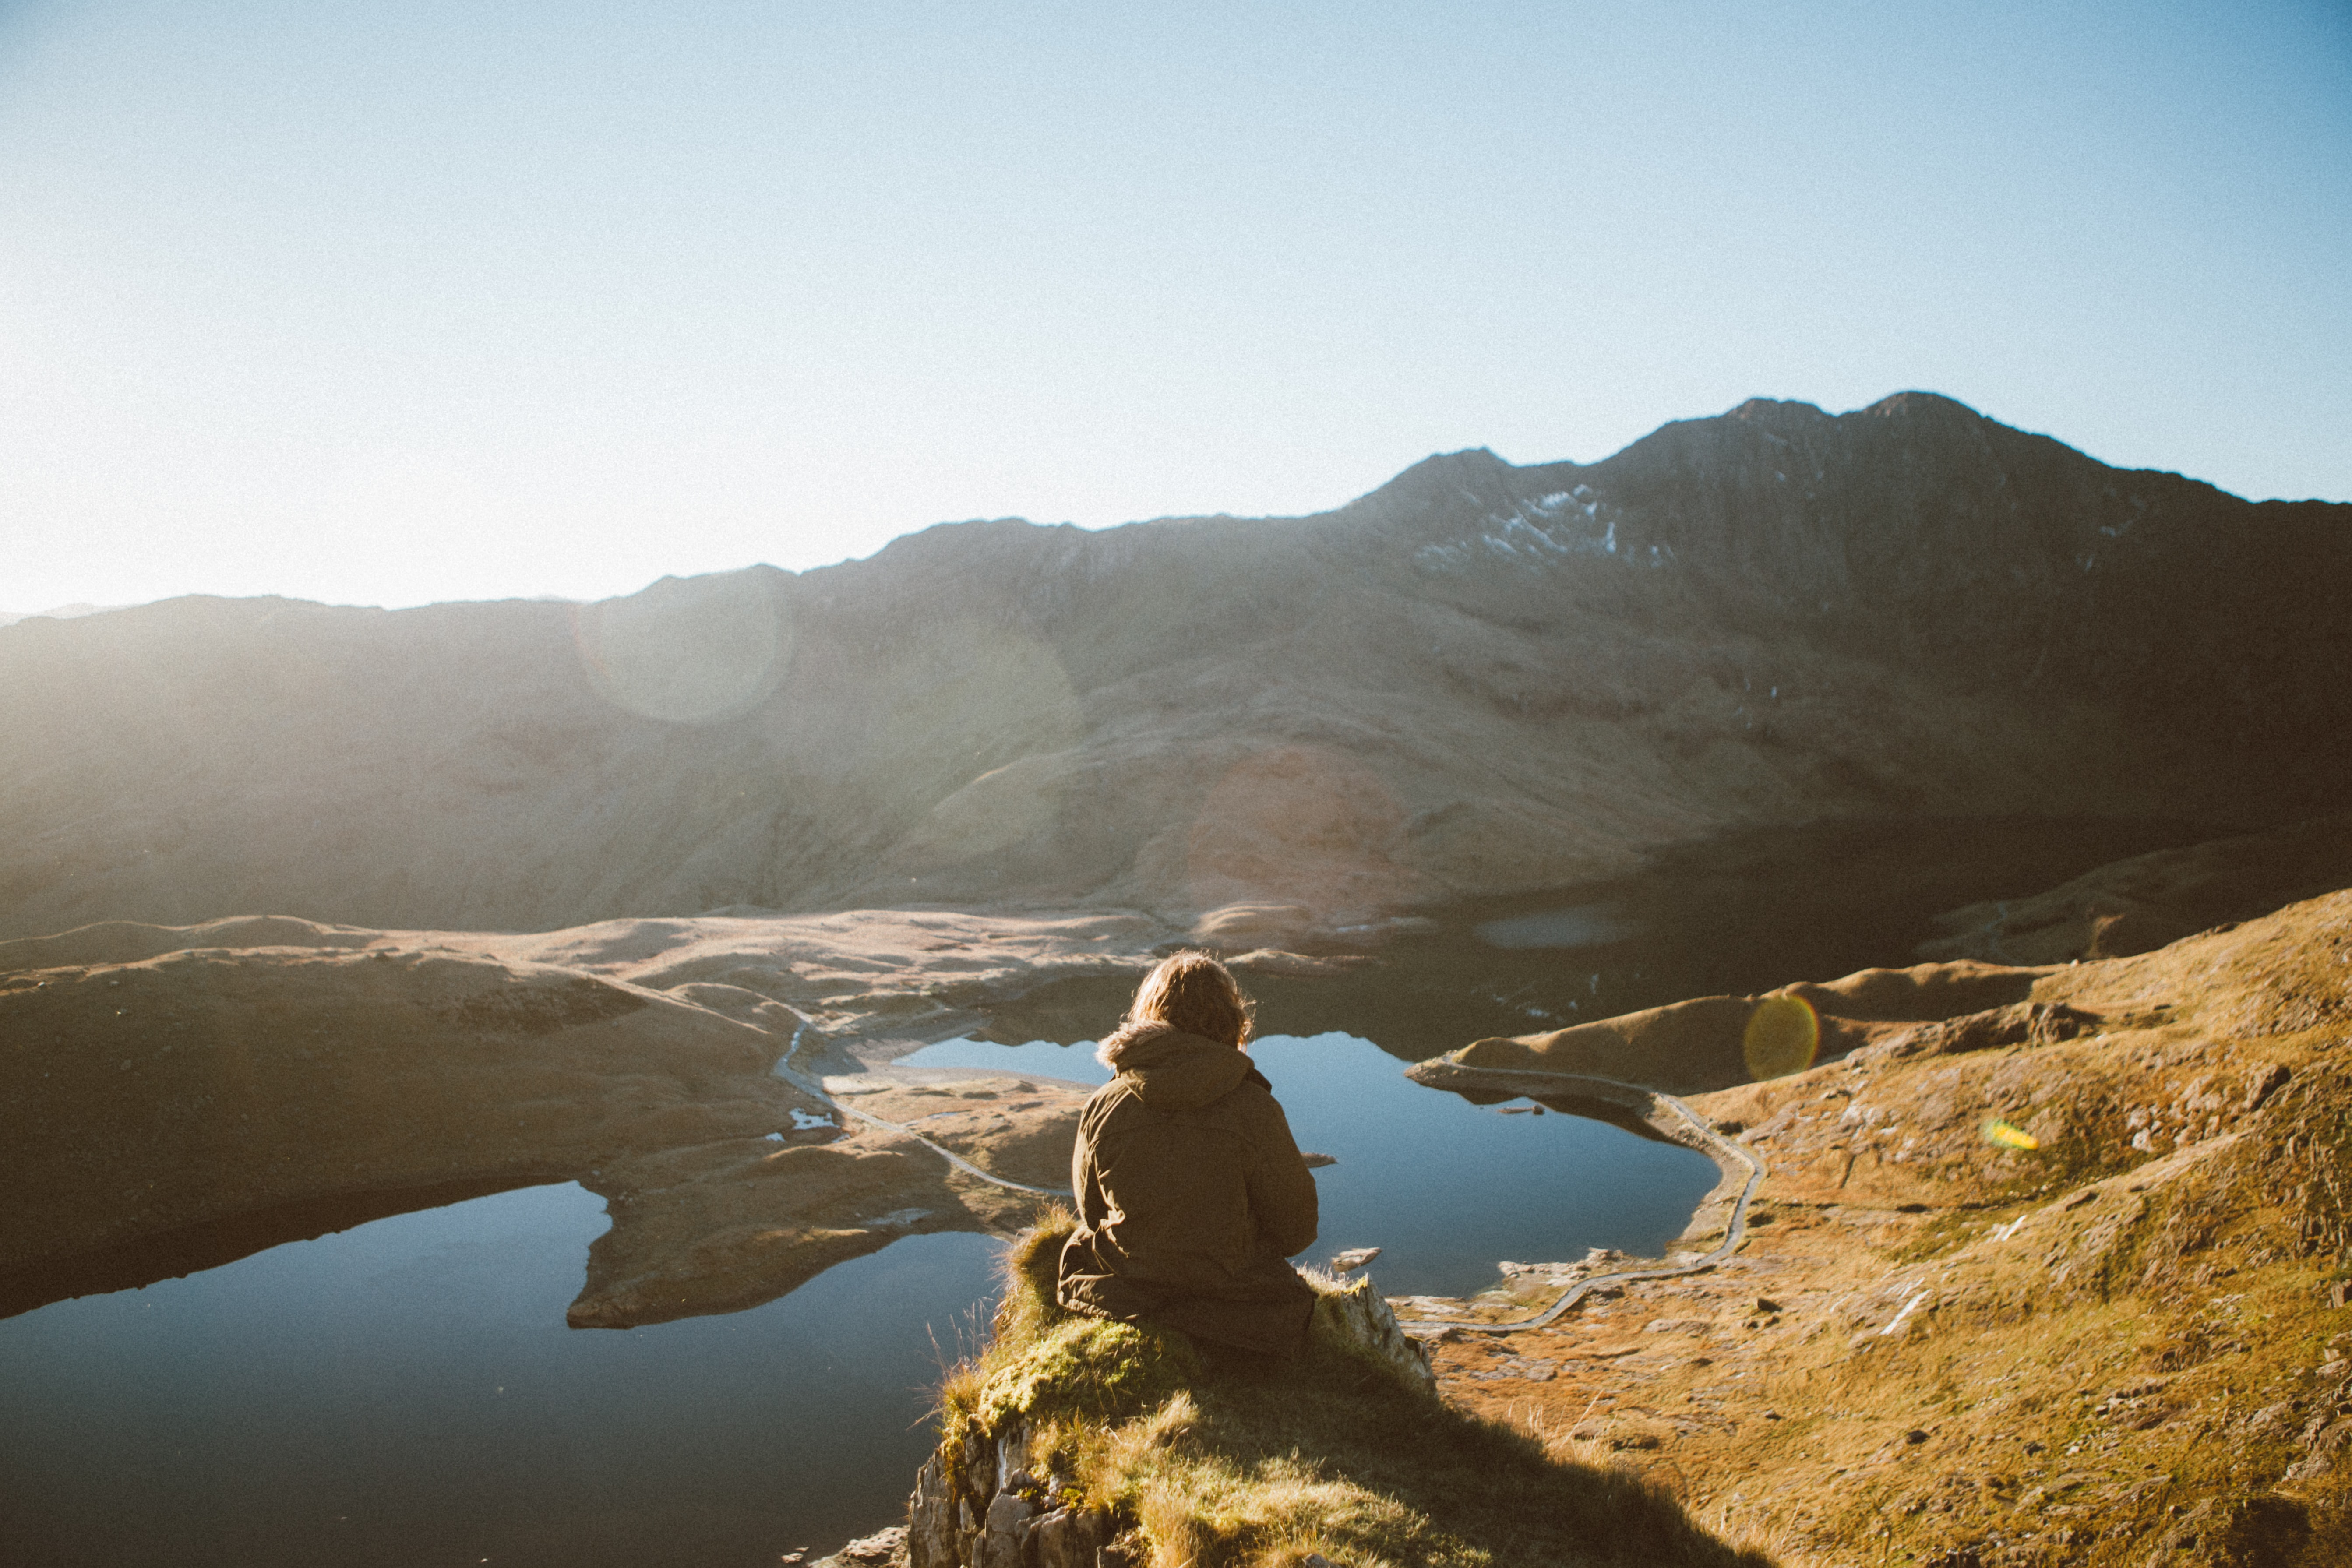 A person sitting on a ledge overlooking a mountain lake near Snowdon on a sunny morning